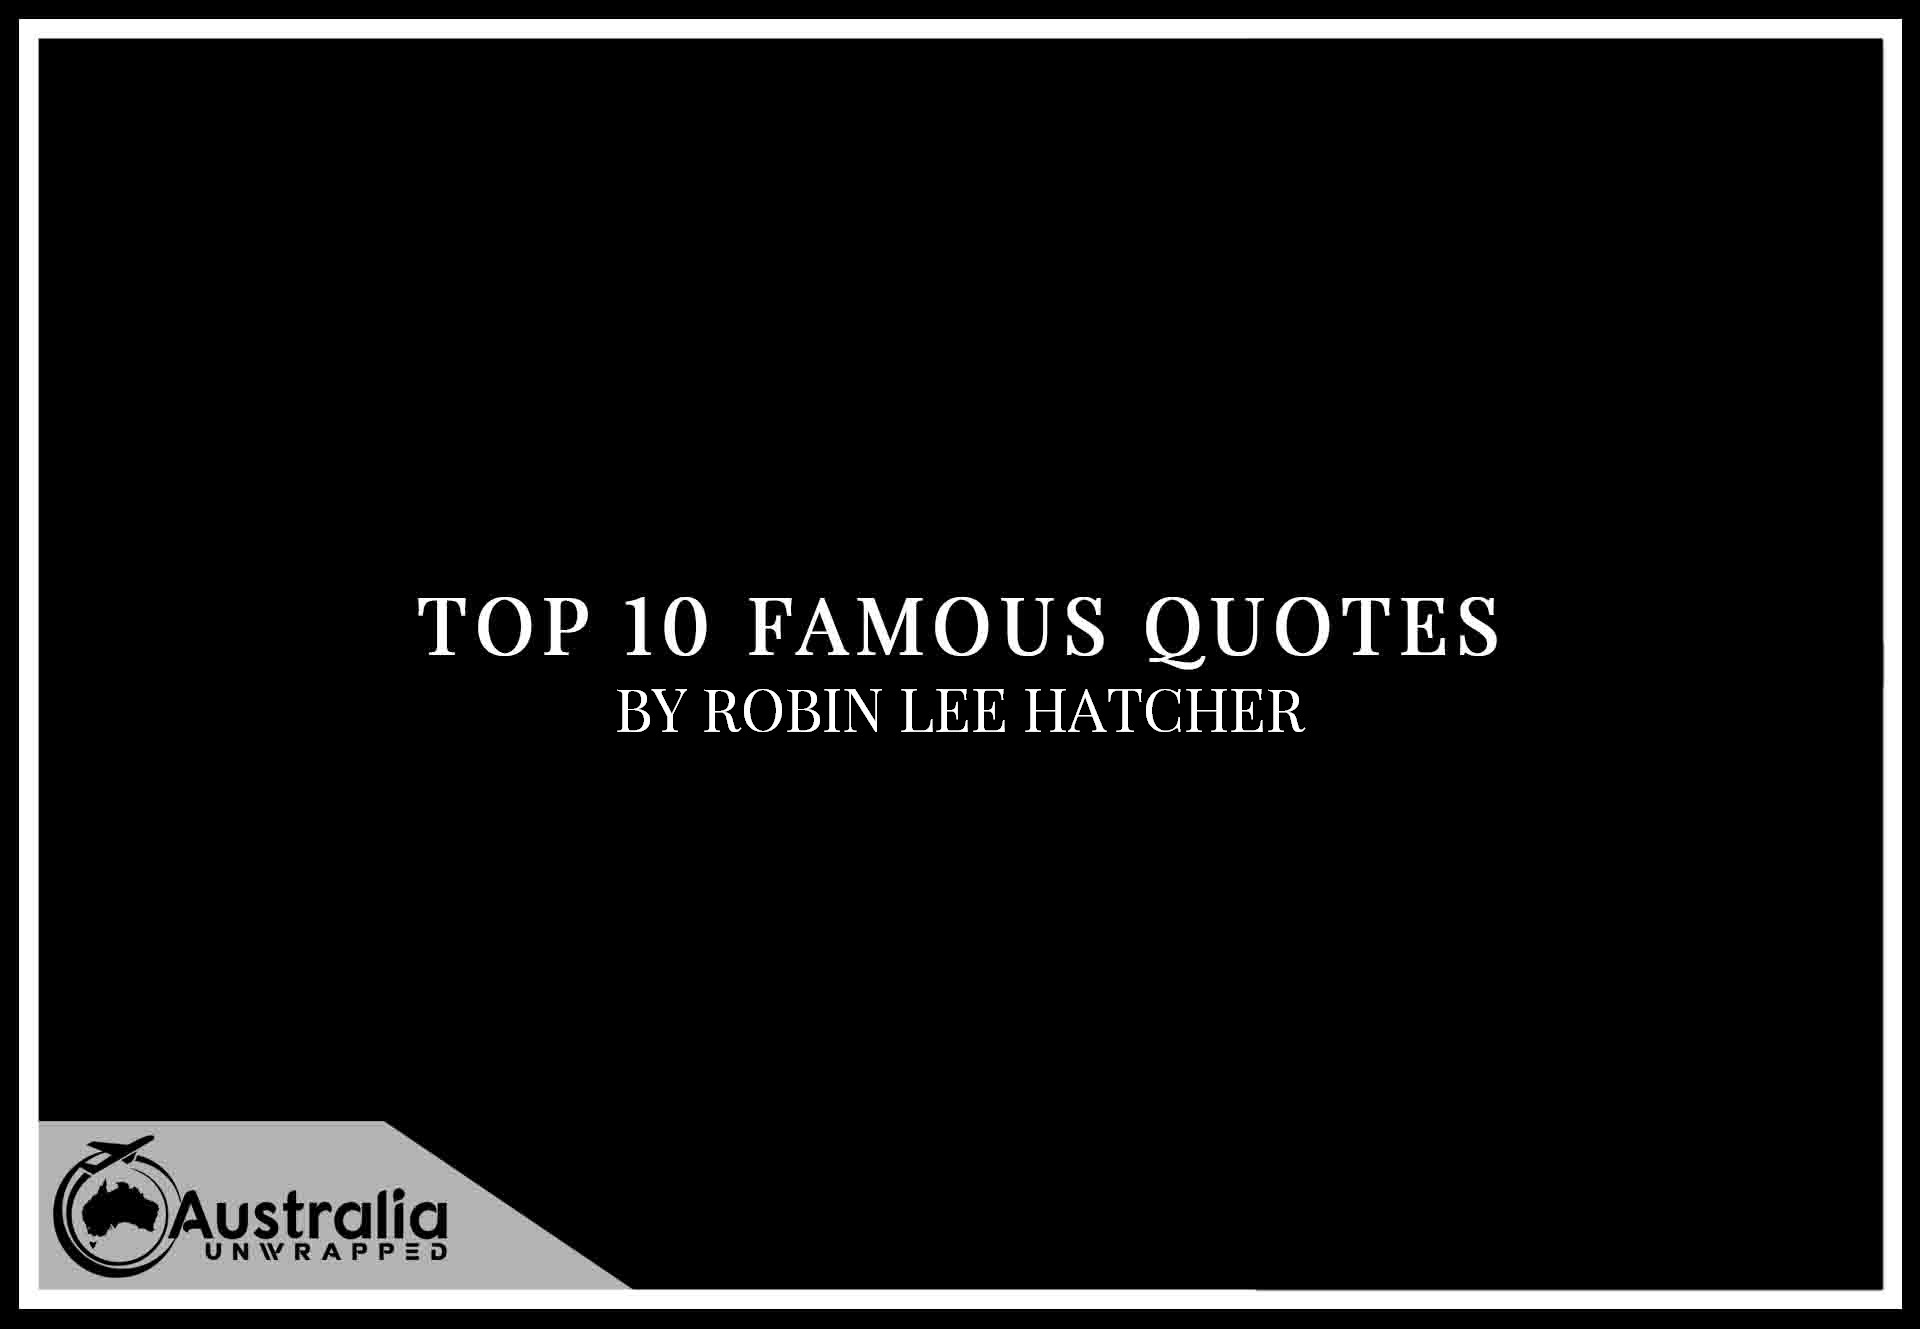 Robin Lee Hatcher's Top 10 Popular and Famous Quotes